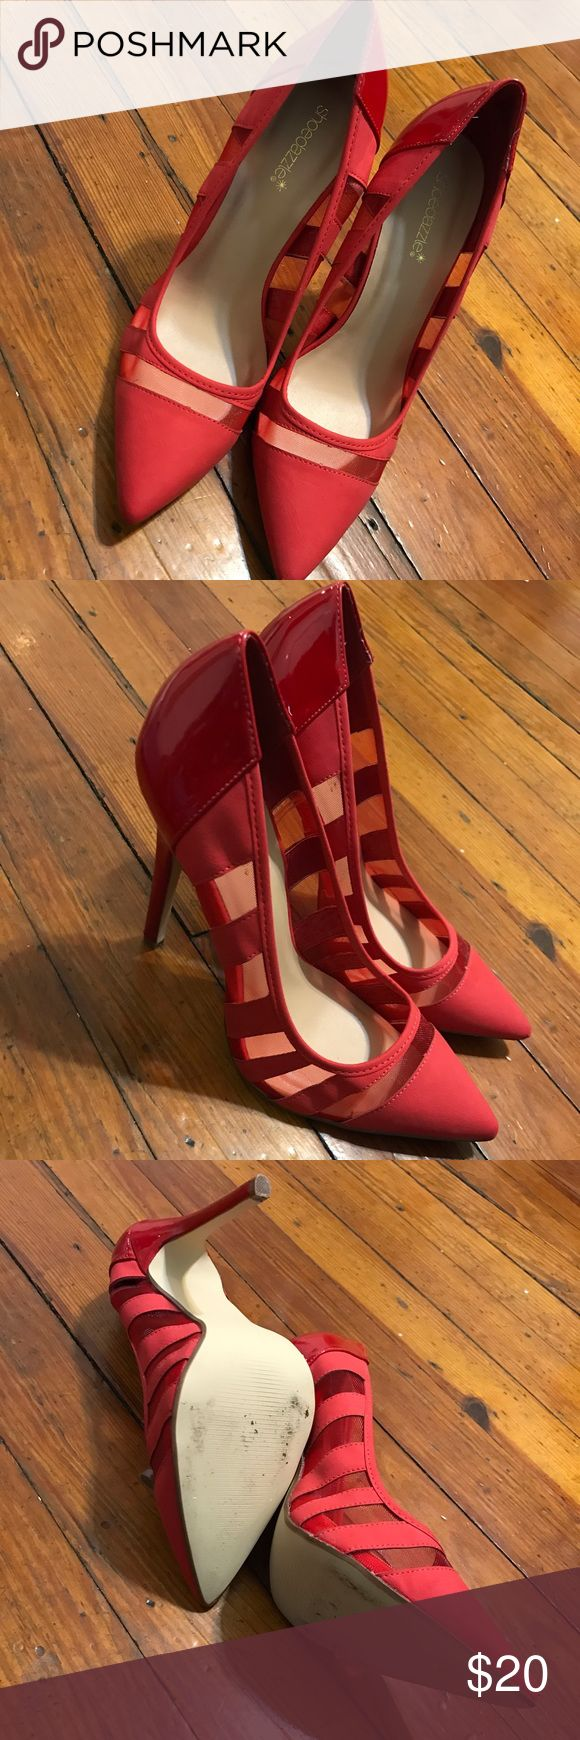 Red ShoeDazzle Pumps Like New Some Minor Wear As Shown In Pictures Shoe Dazzle Shoes Heels